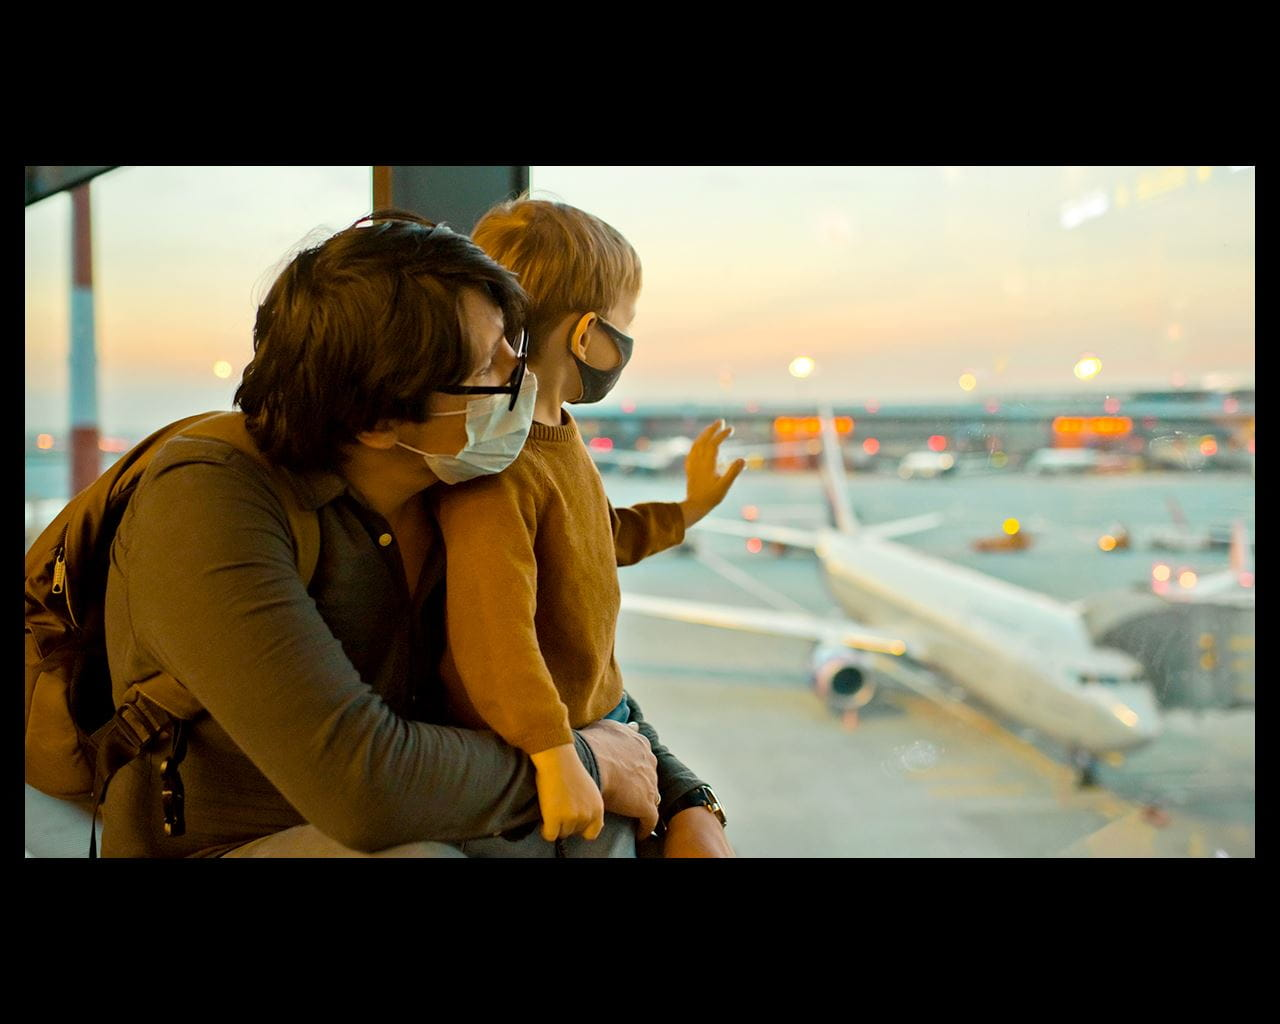 father and son delaying their flight travels